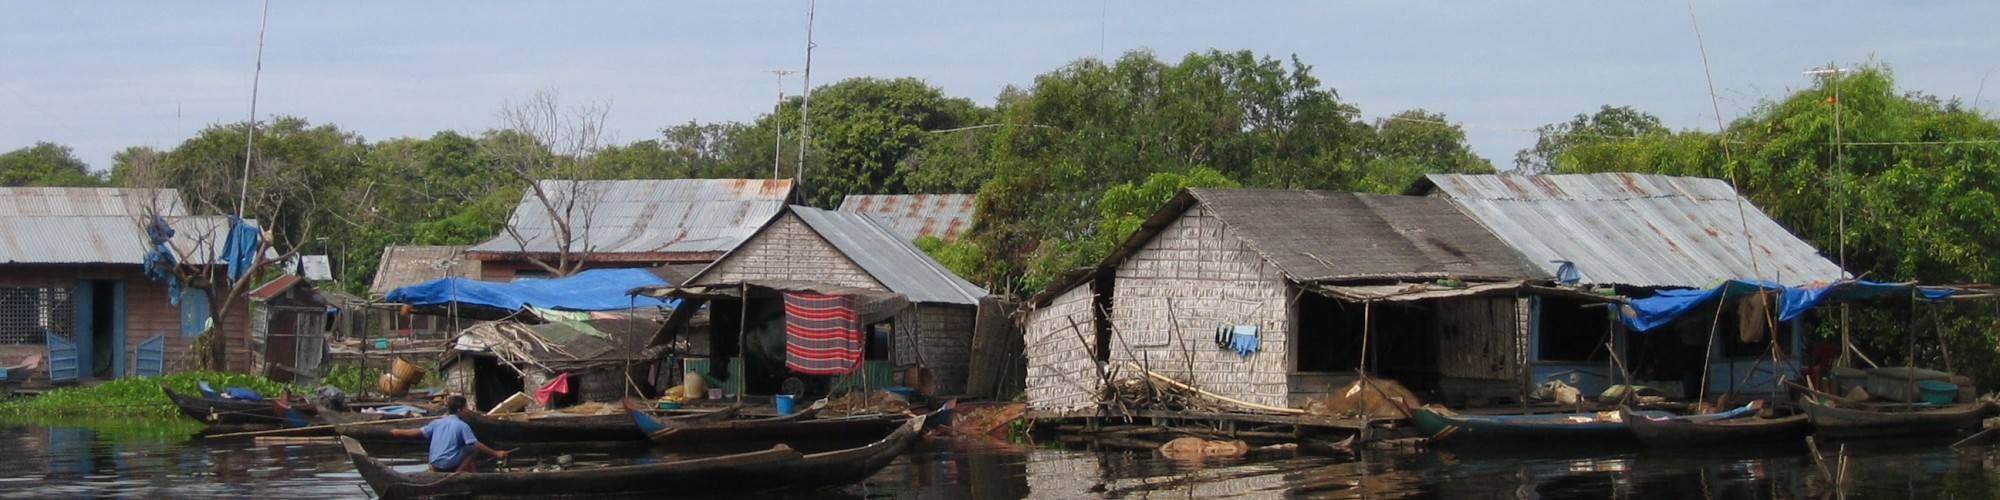 Floating Houses Tonle Sap Lake_Siem Reap_Cambodia